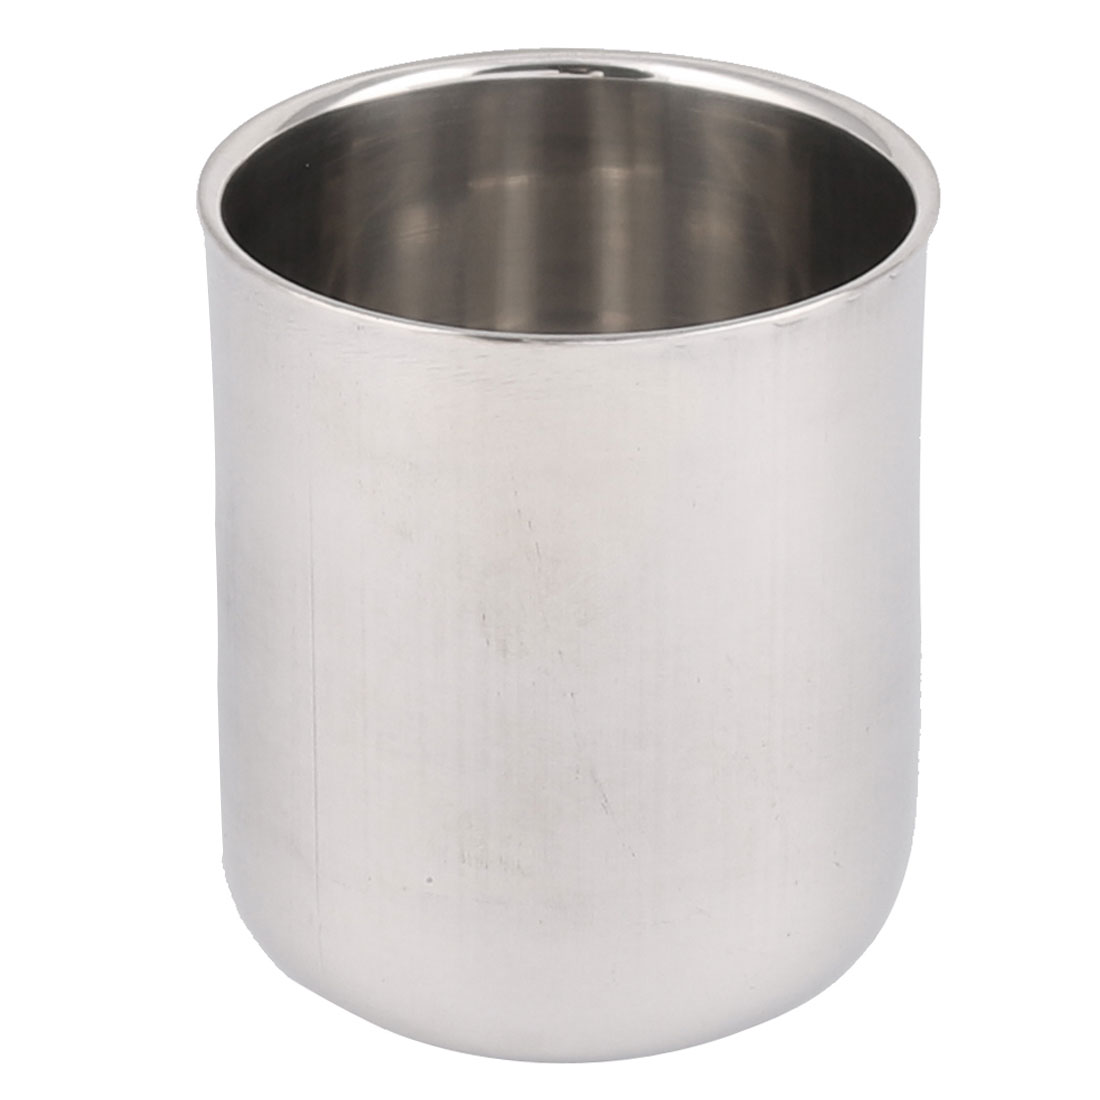 Home Office 304 Stainless Steel Lidless Anti-Scald Water Cup Drink Mug 190ML